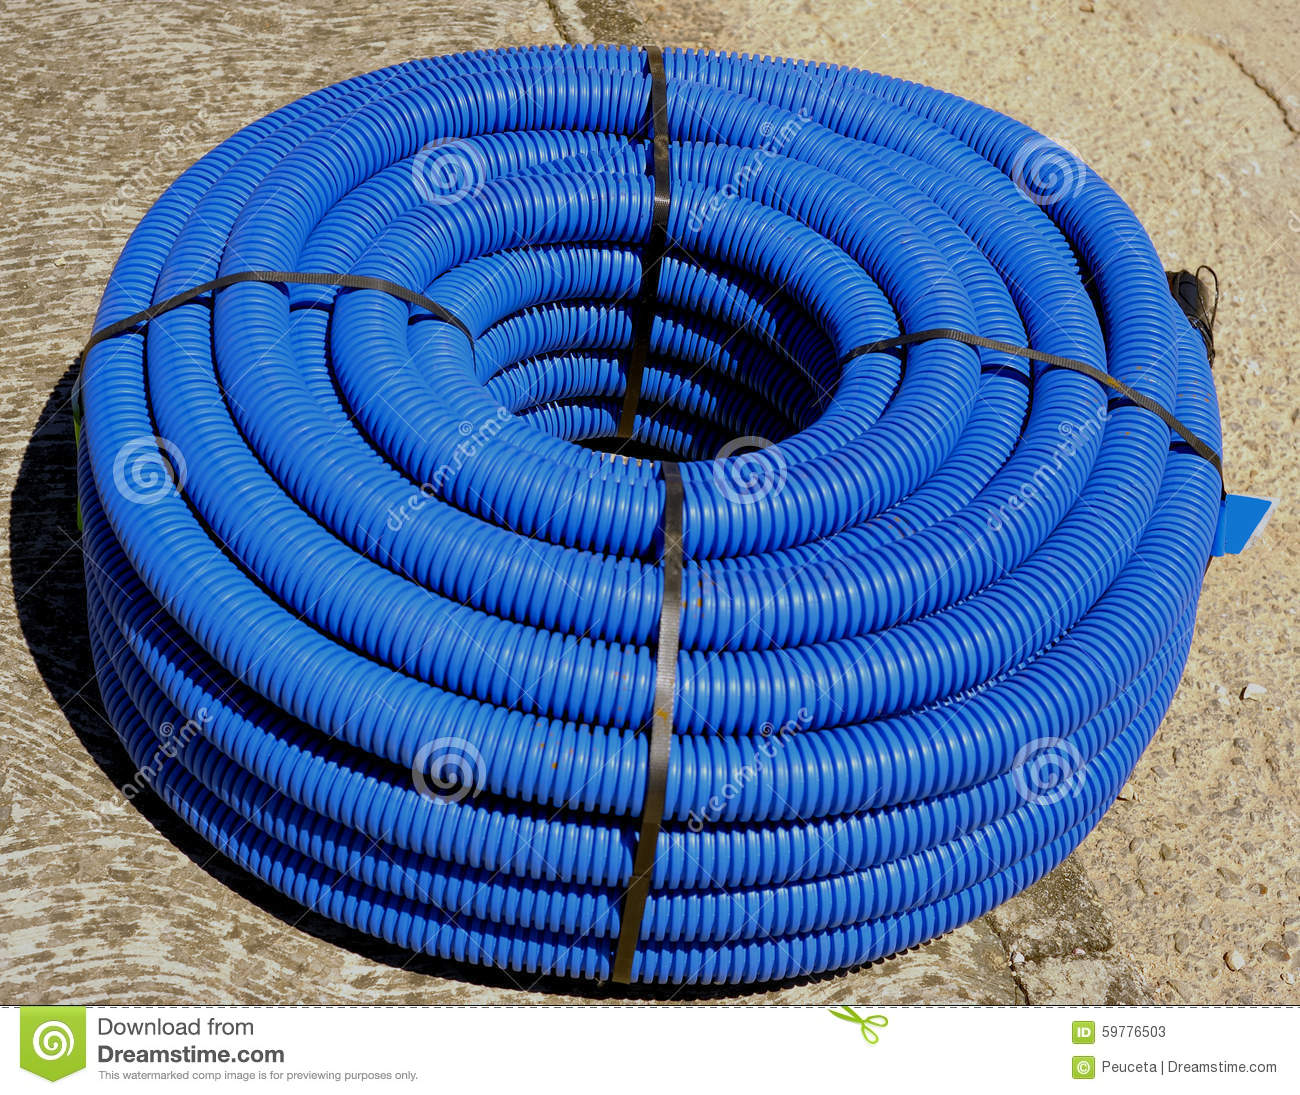 Roll of corrugated conduit stock image  Image of area - 59776503